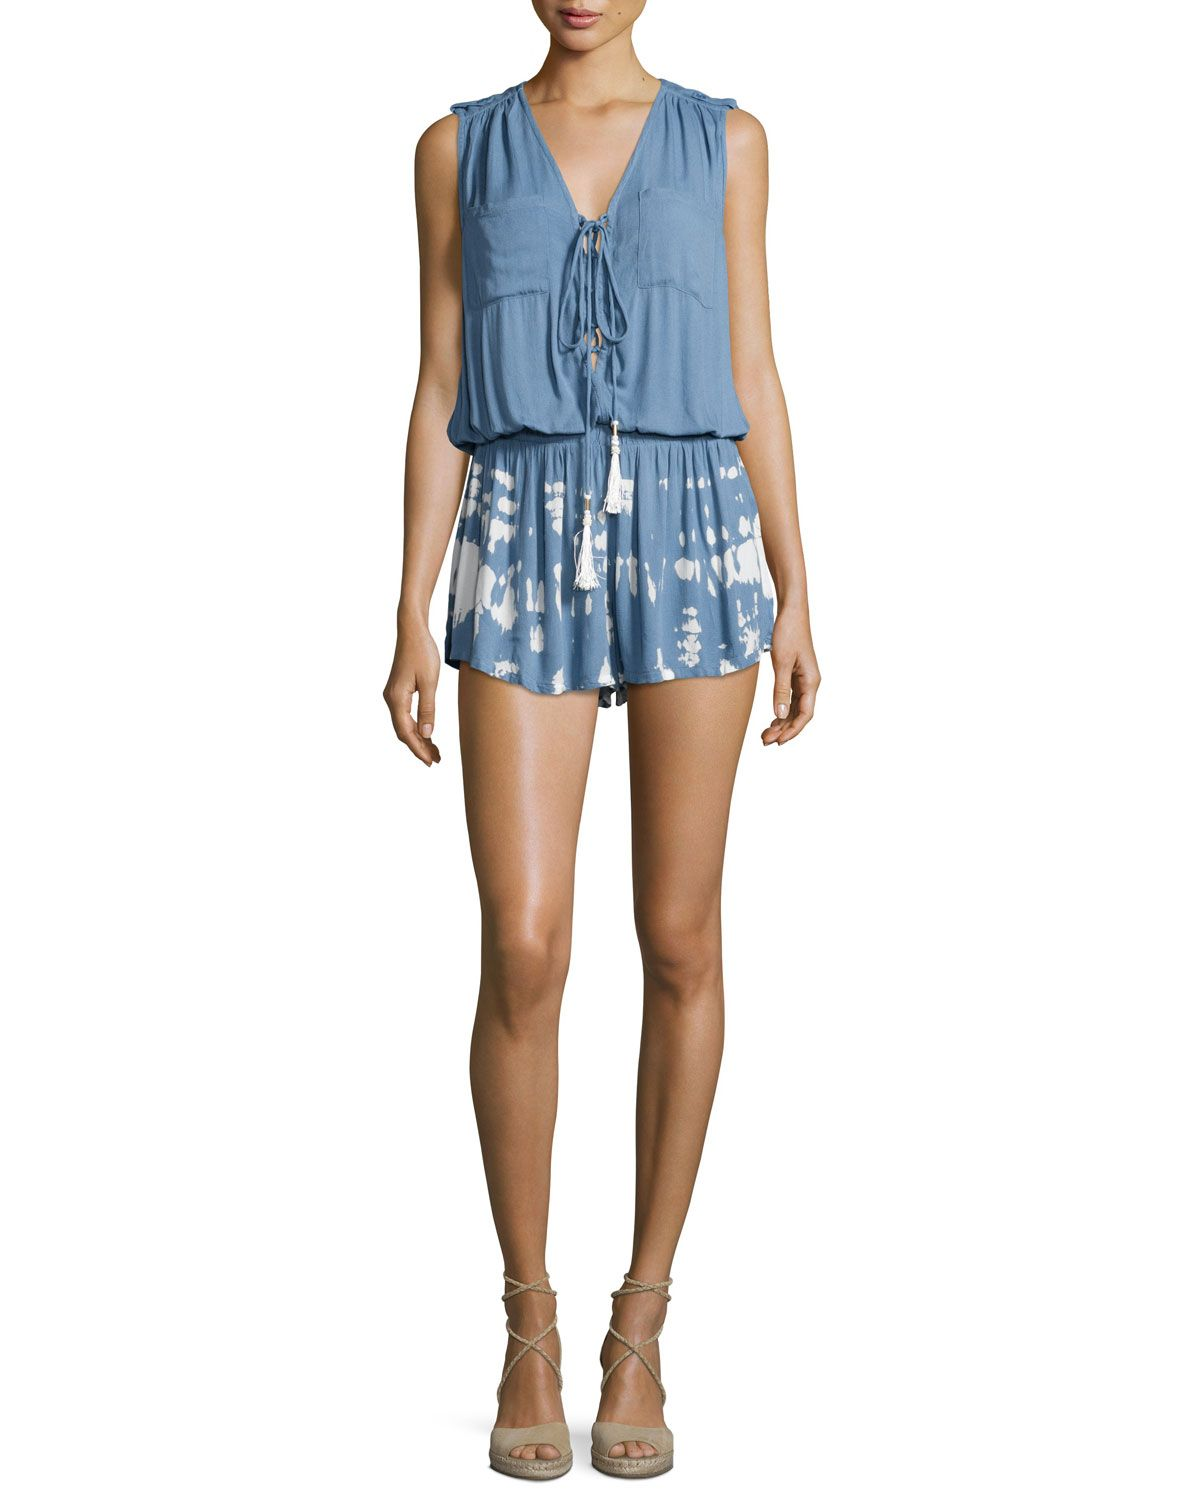 Vara Splatter-Print Lace-Up Romper, Chambray Acid Trip